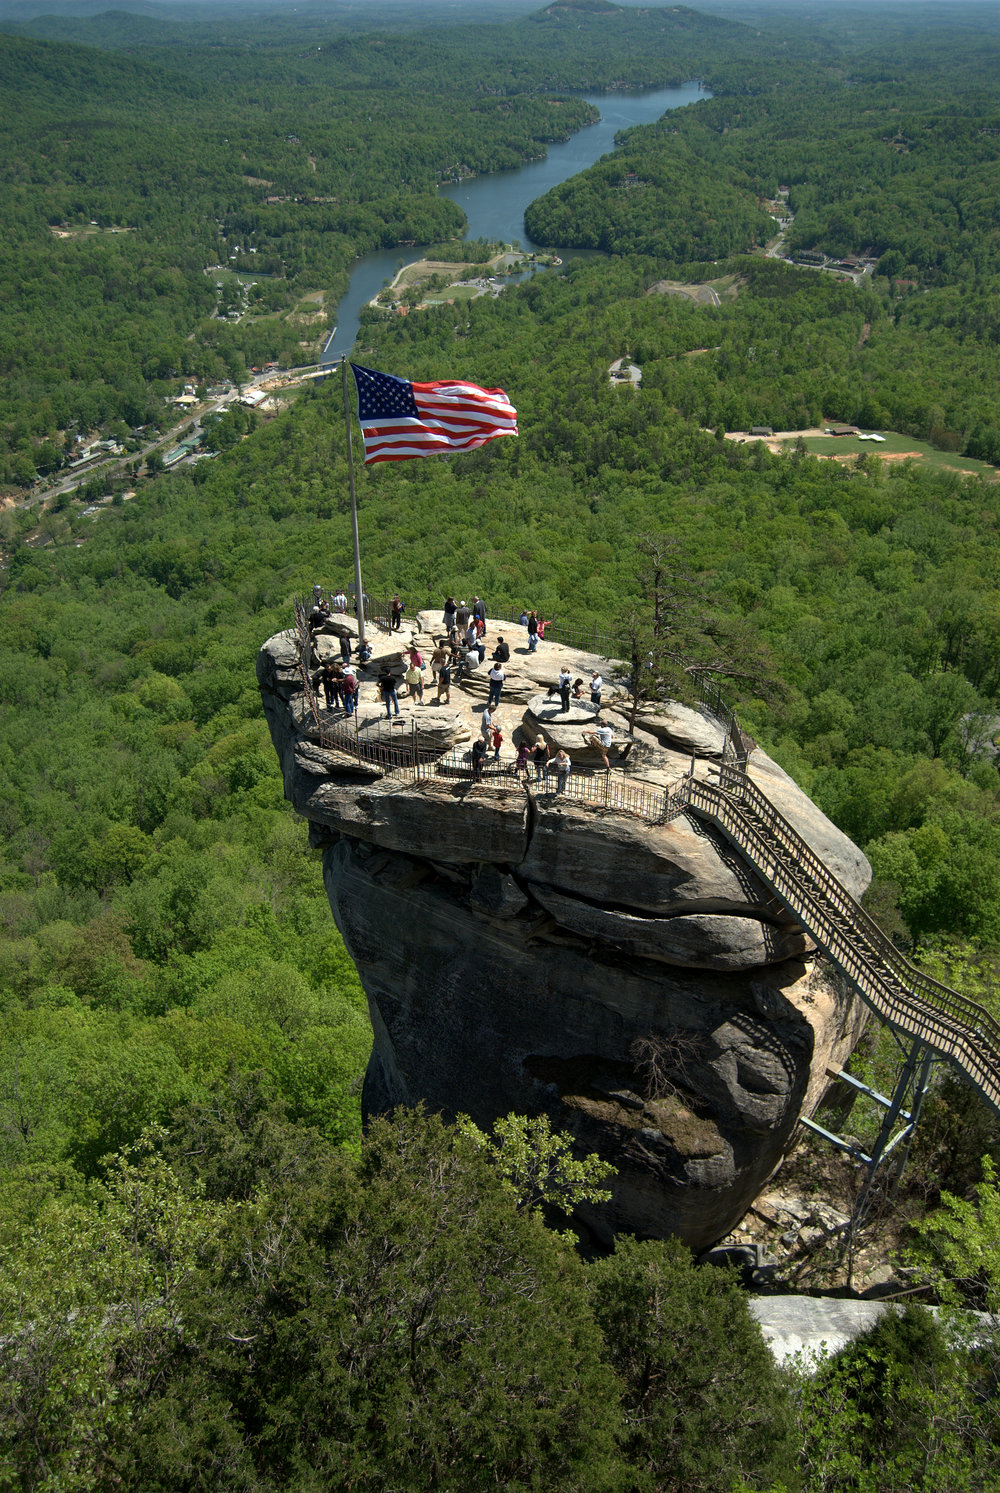 Let's go to the top of Chimney Rock!